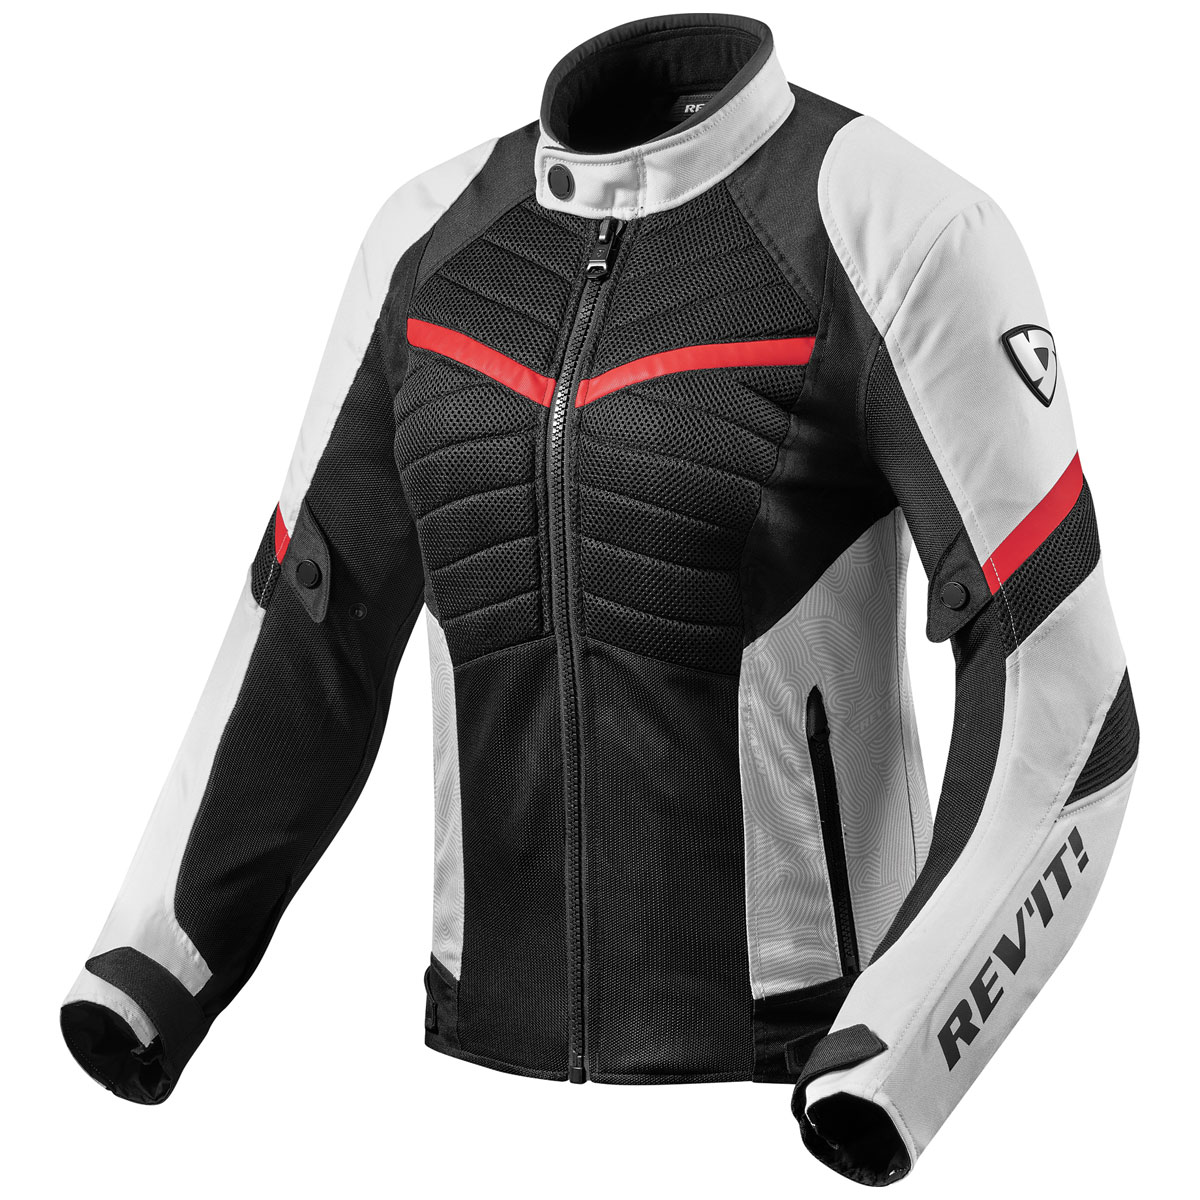 REV'IT! Women's Arc Air White/Red Textile Jacket